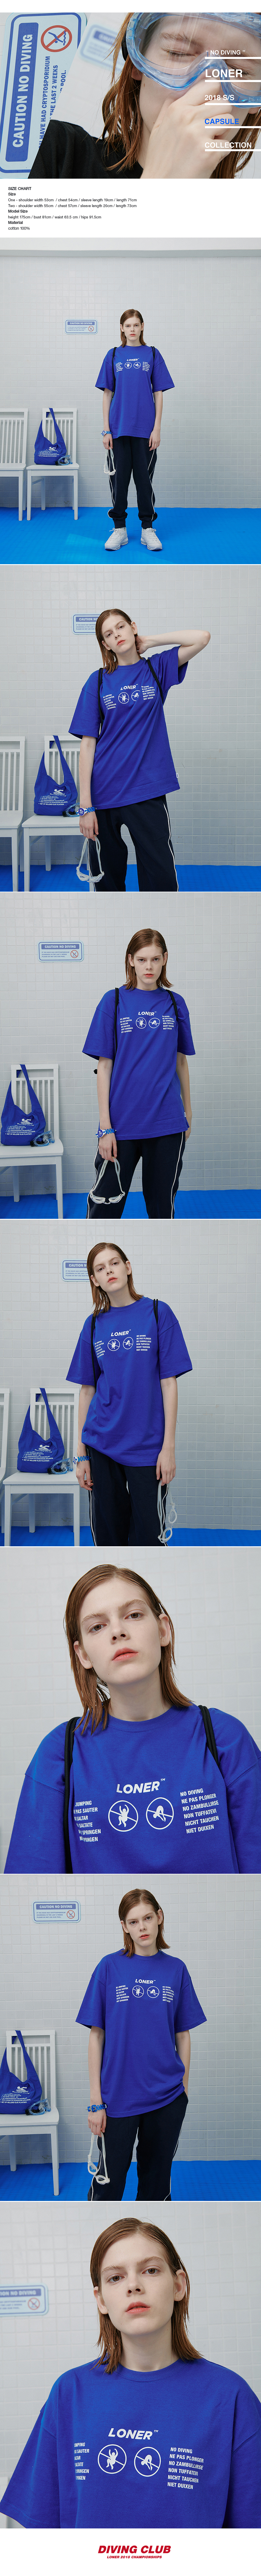 No jumping tshirt-blue.jpg